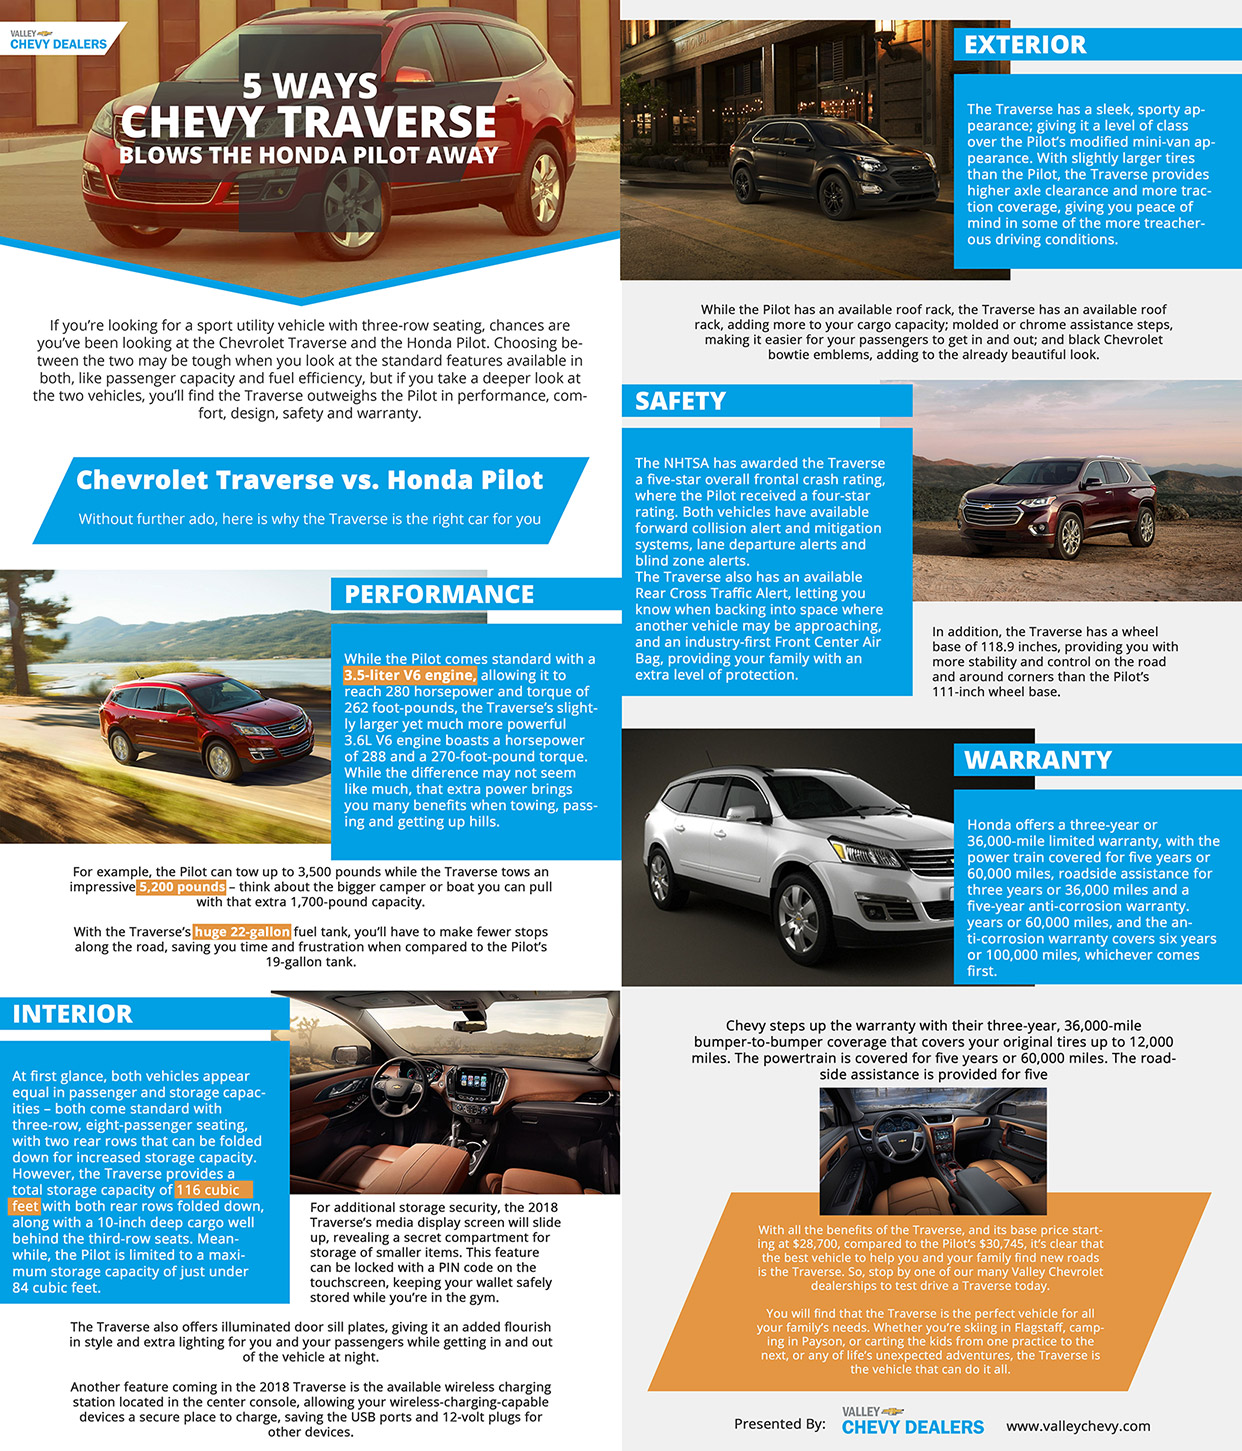 Valley Chevrolet - 5 Ways 2017 Chevy Travers Blows the Honda Pilot Away: INFOGRAPHIC